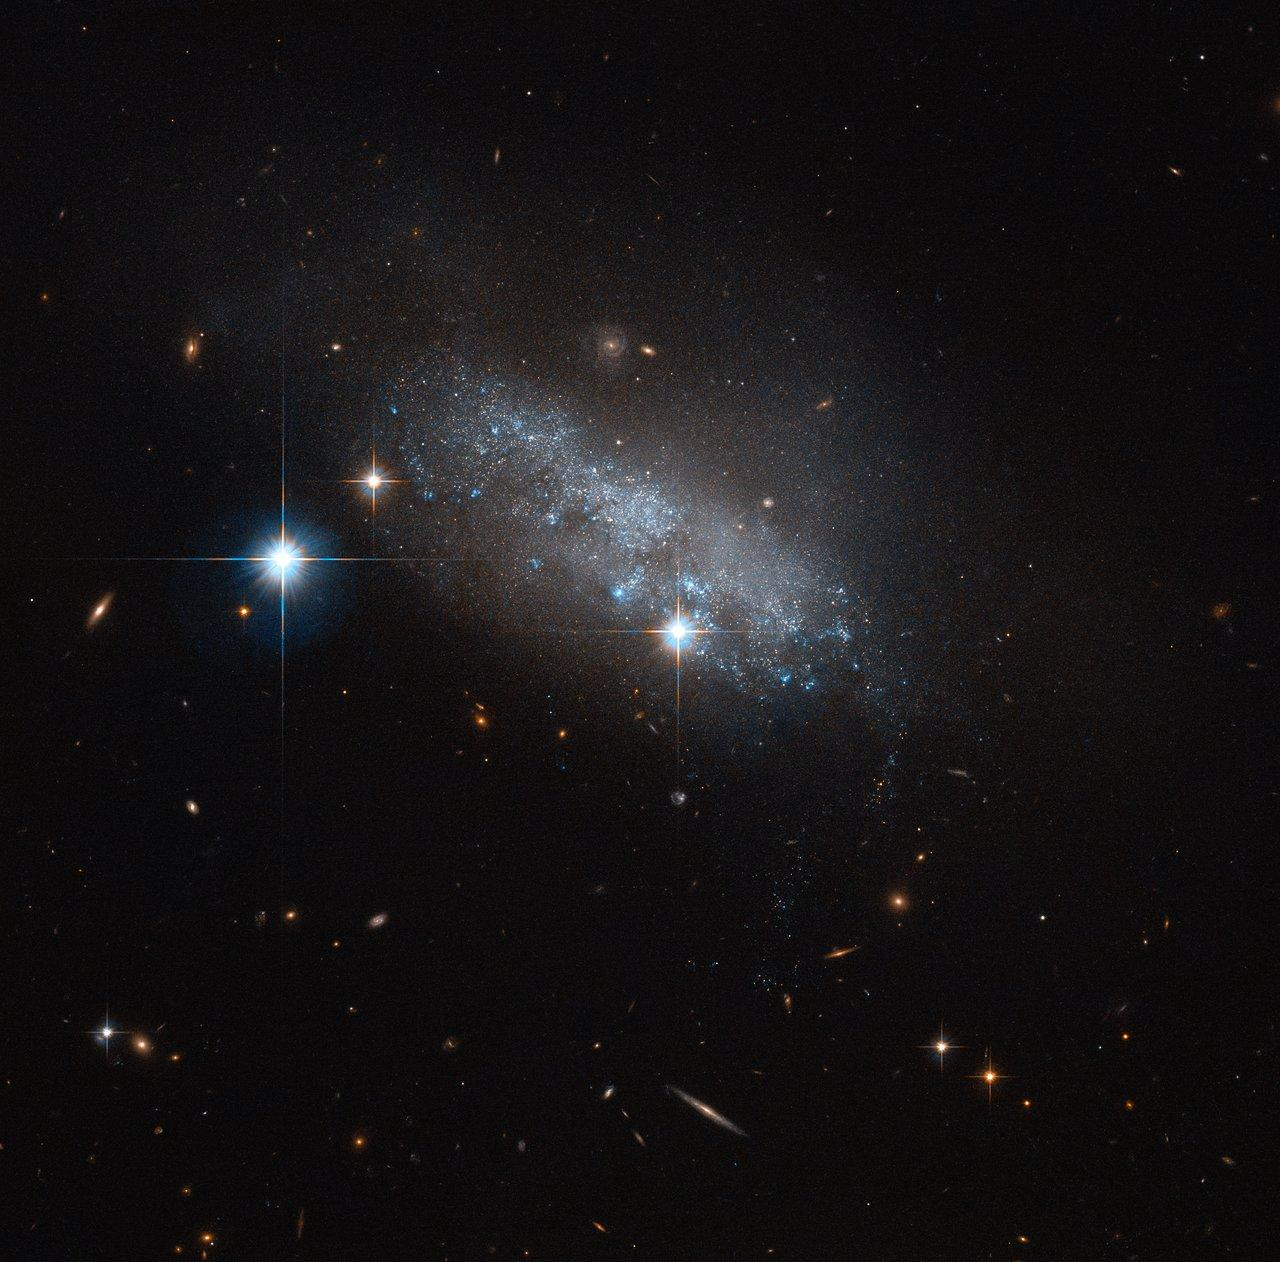 Hubble Photographs NGC 4388 — A Distant Galaxy Feeling The Pull Of Its Neighbors